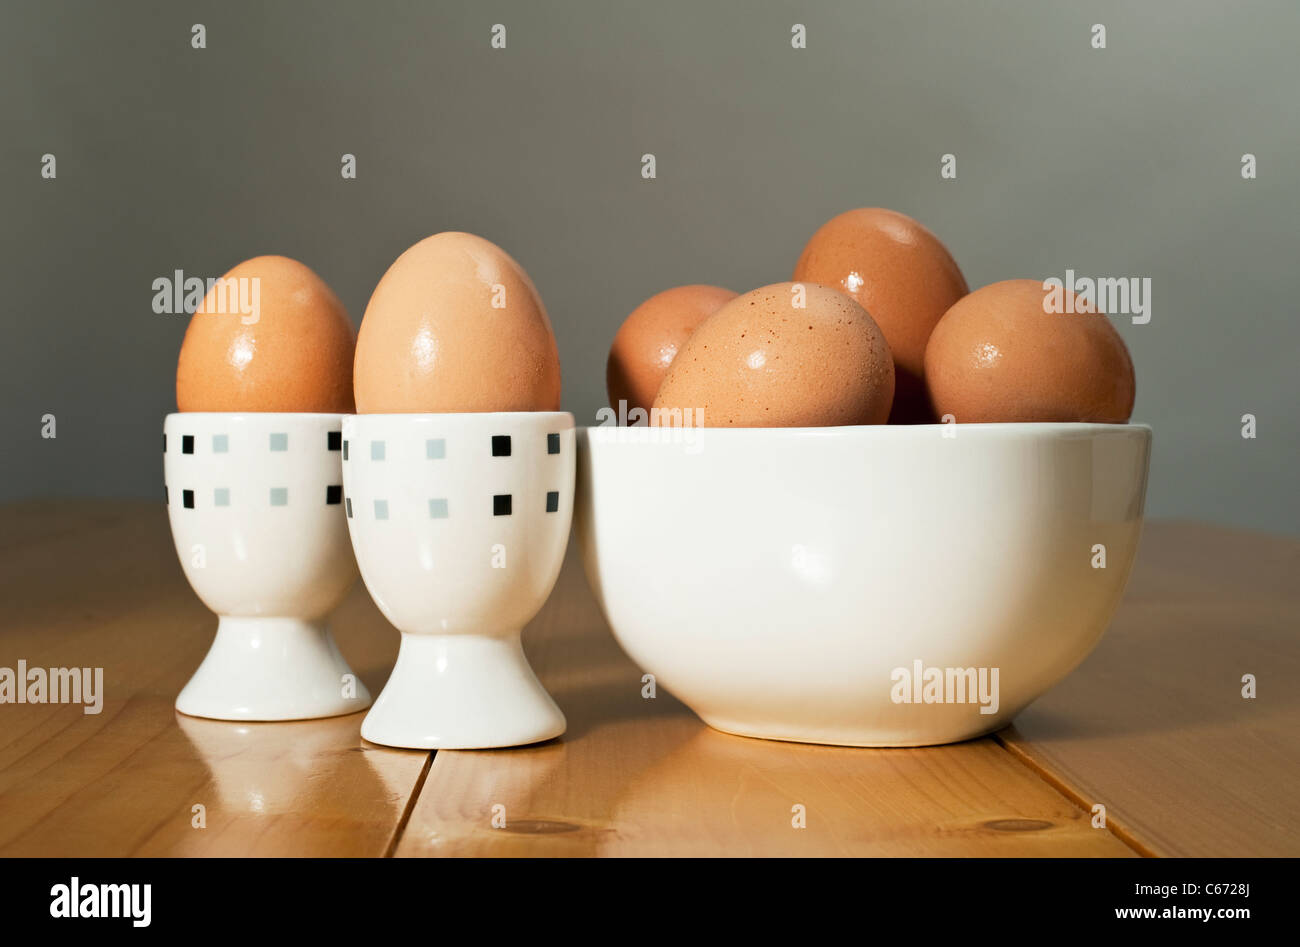 Two Boiled eggs with other eggs in a white bowl - Stock Image